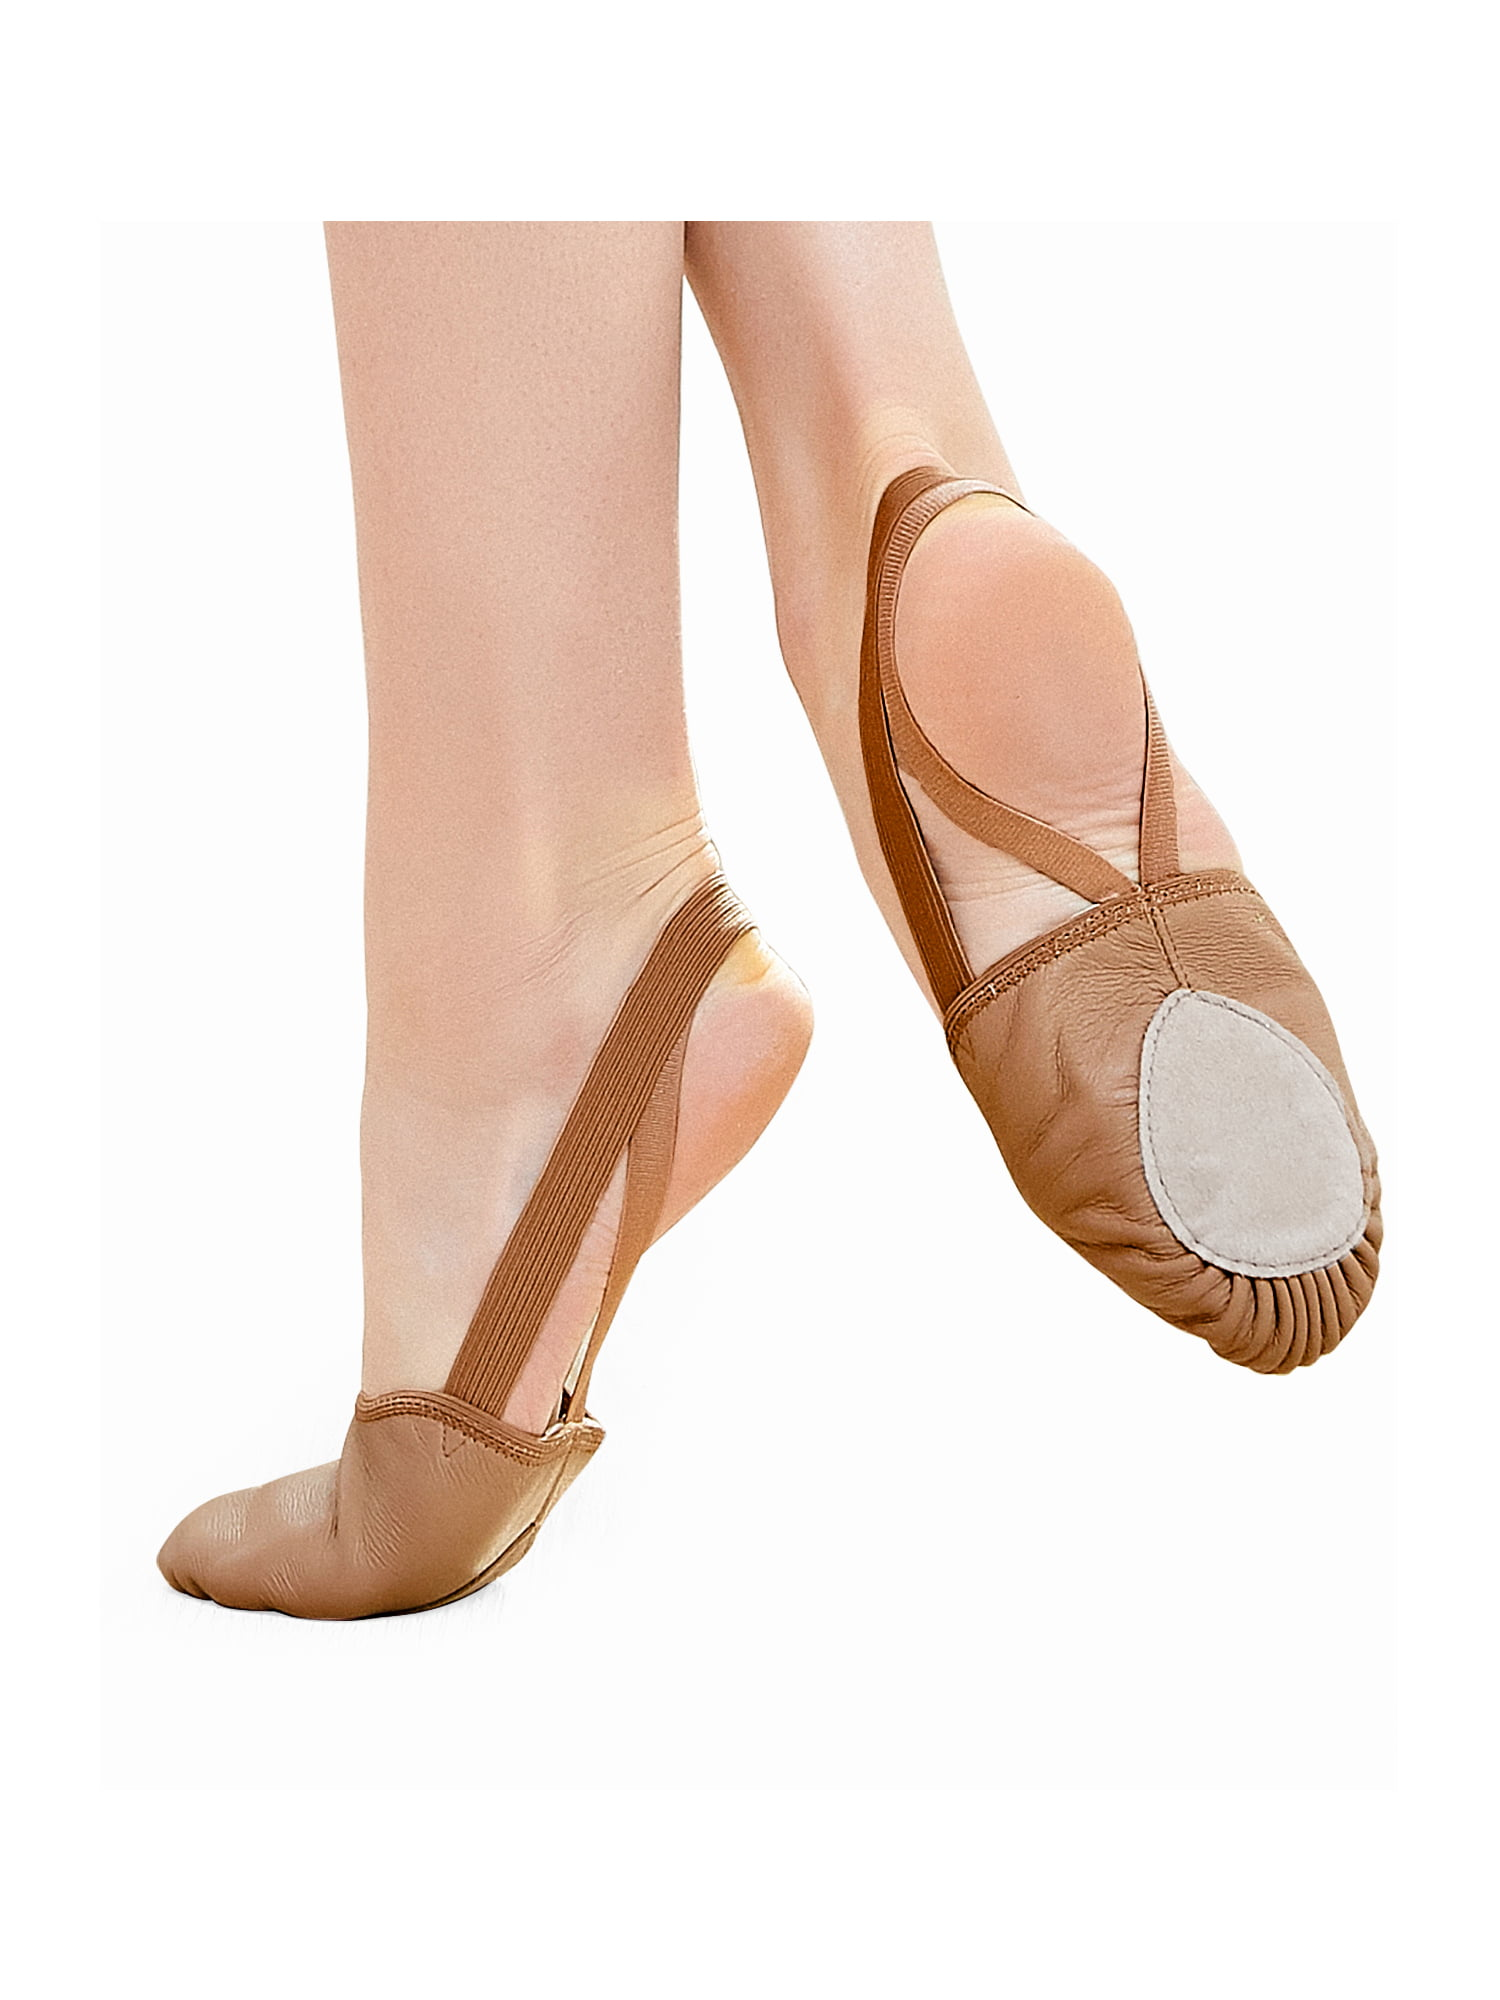 Lyrical Dance Shoes Pirouette Shoes